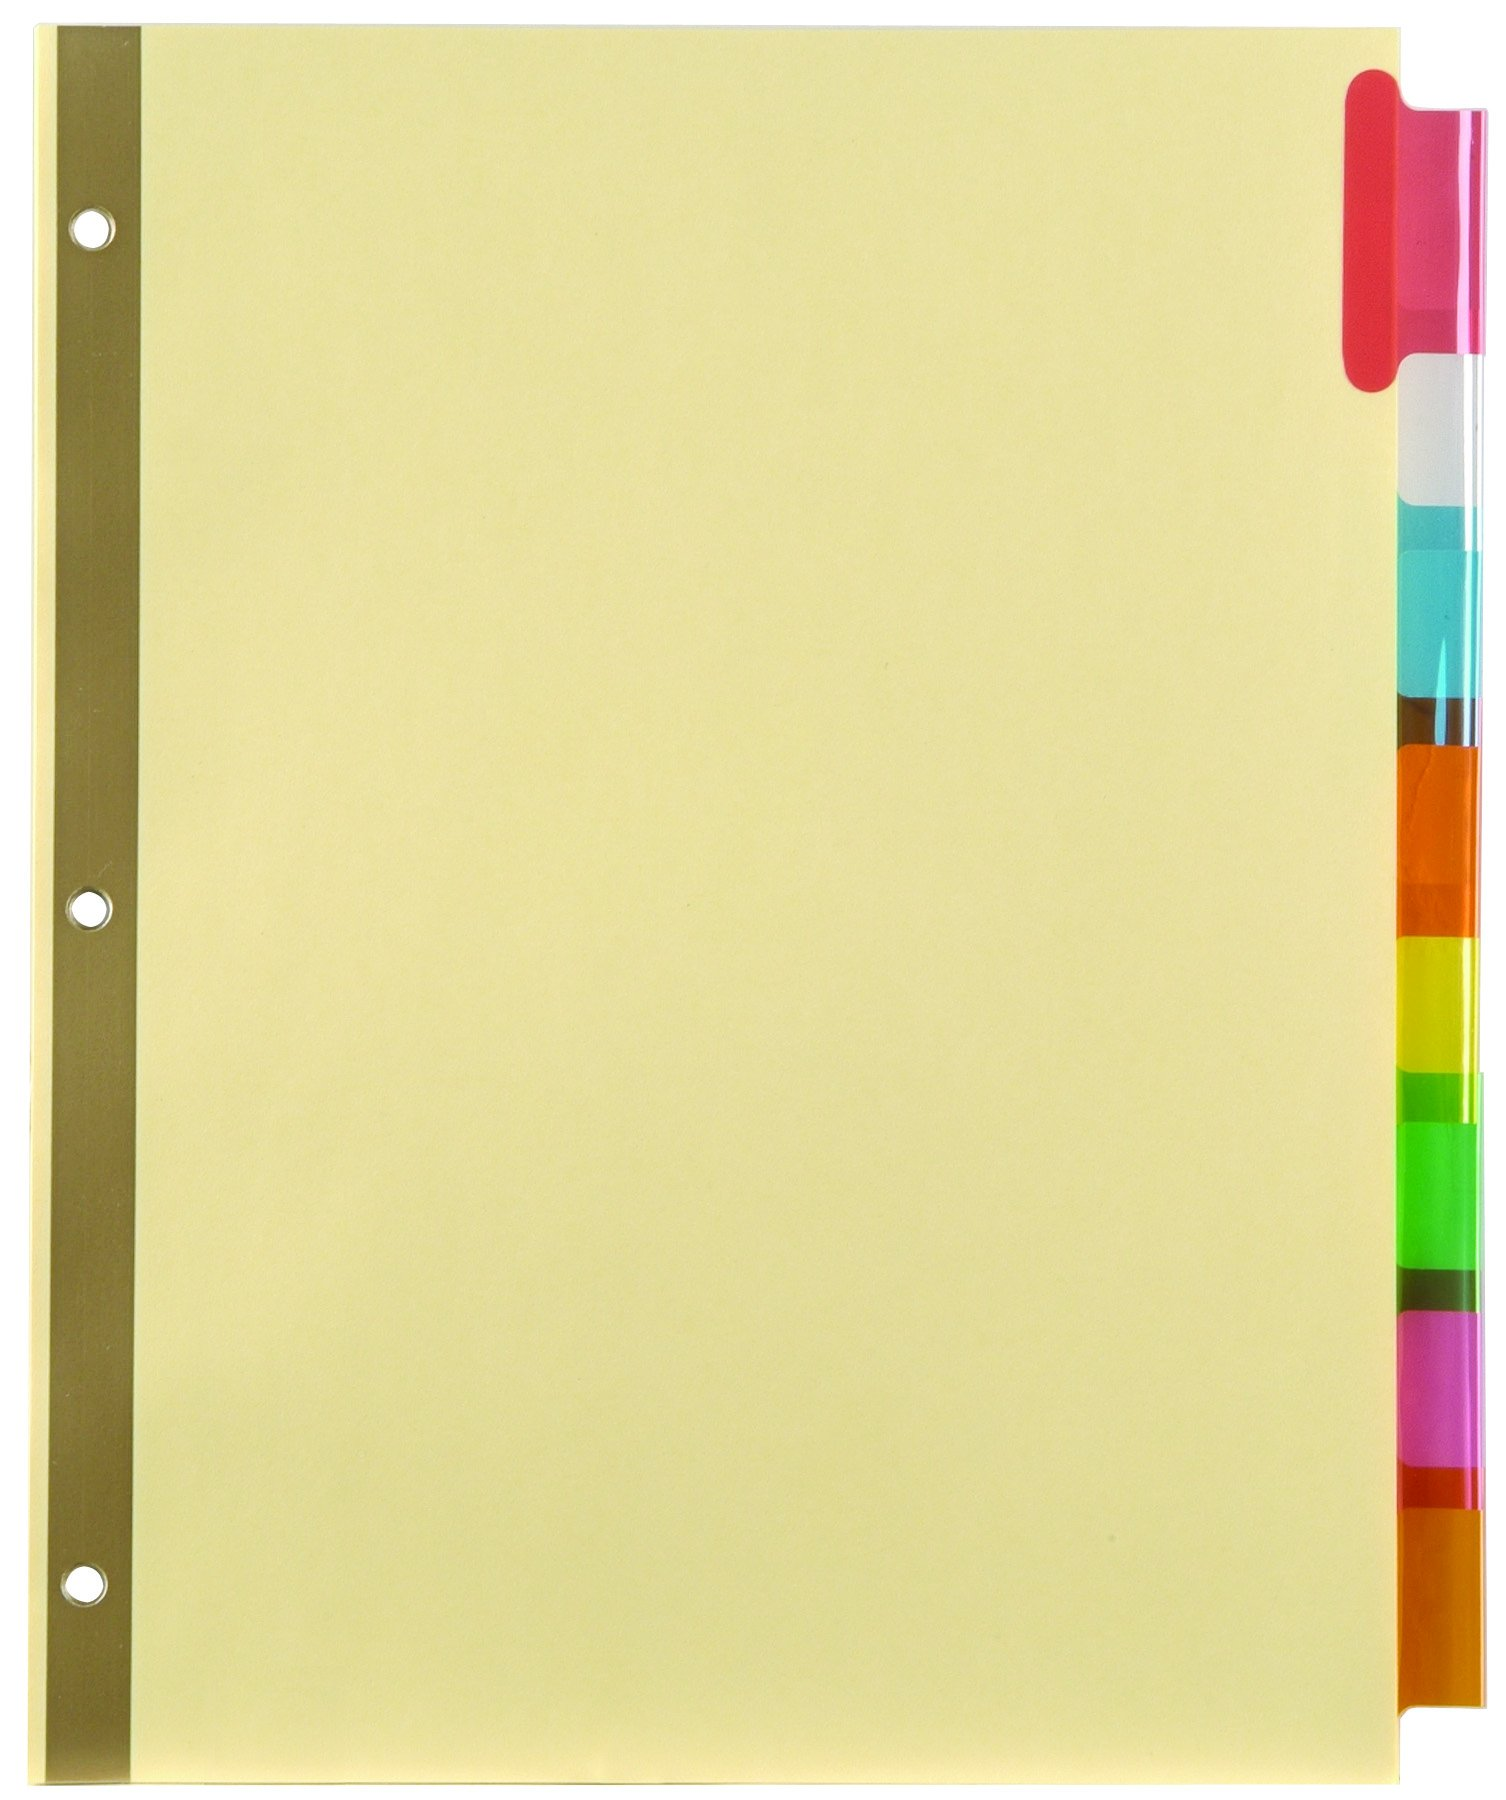 Staples; Insertable Big Tab Dividers with Buff Paper, Multicolor, 8-Tab